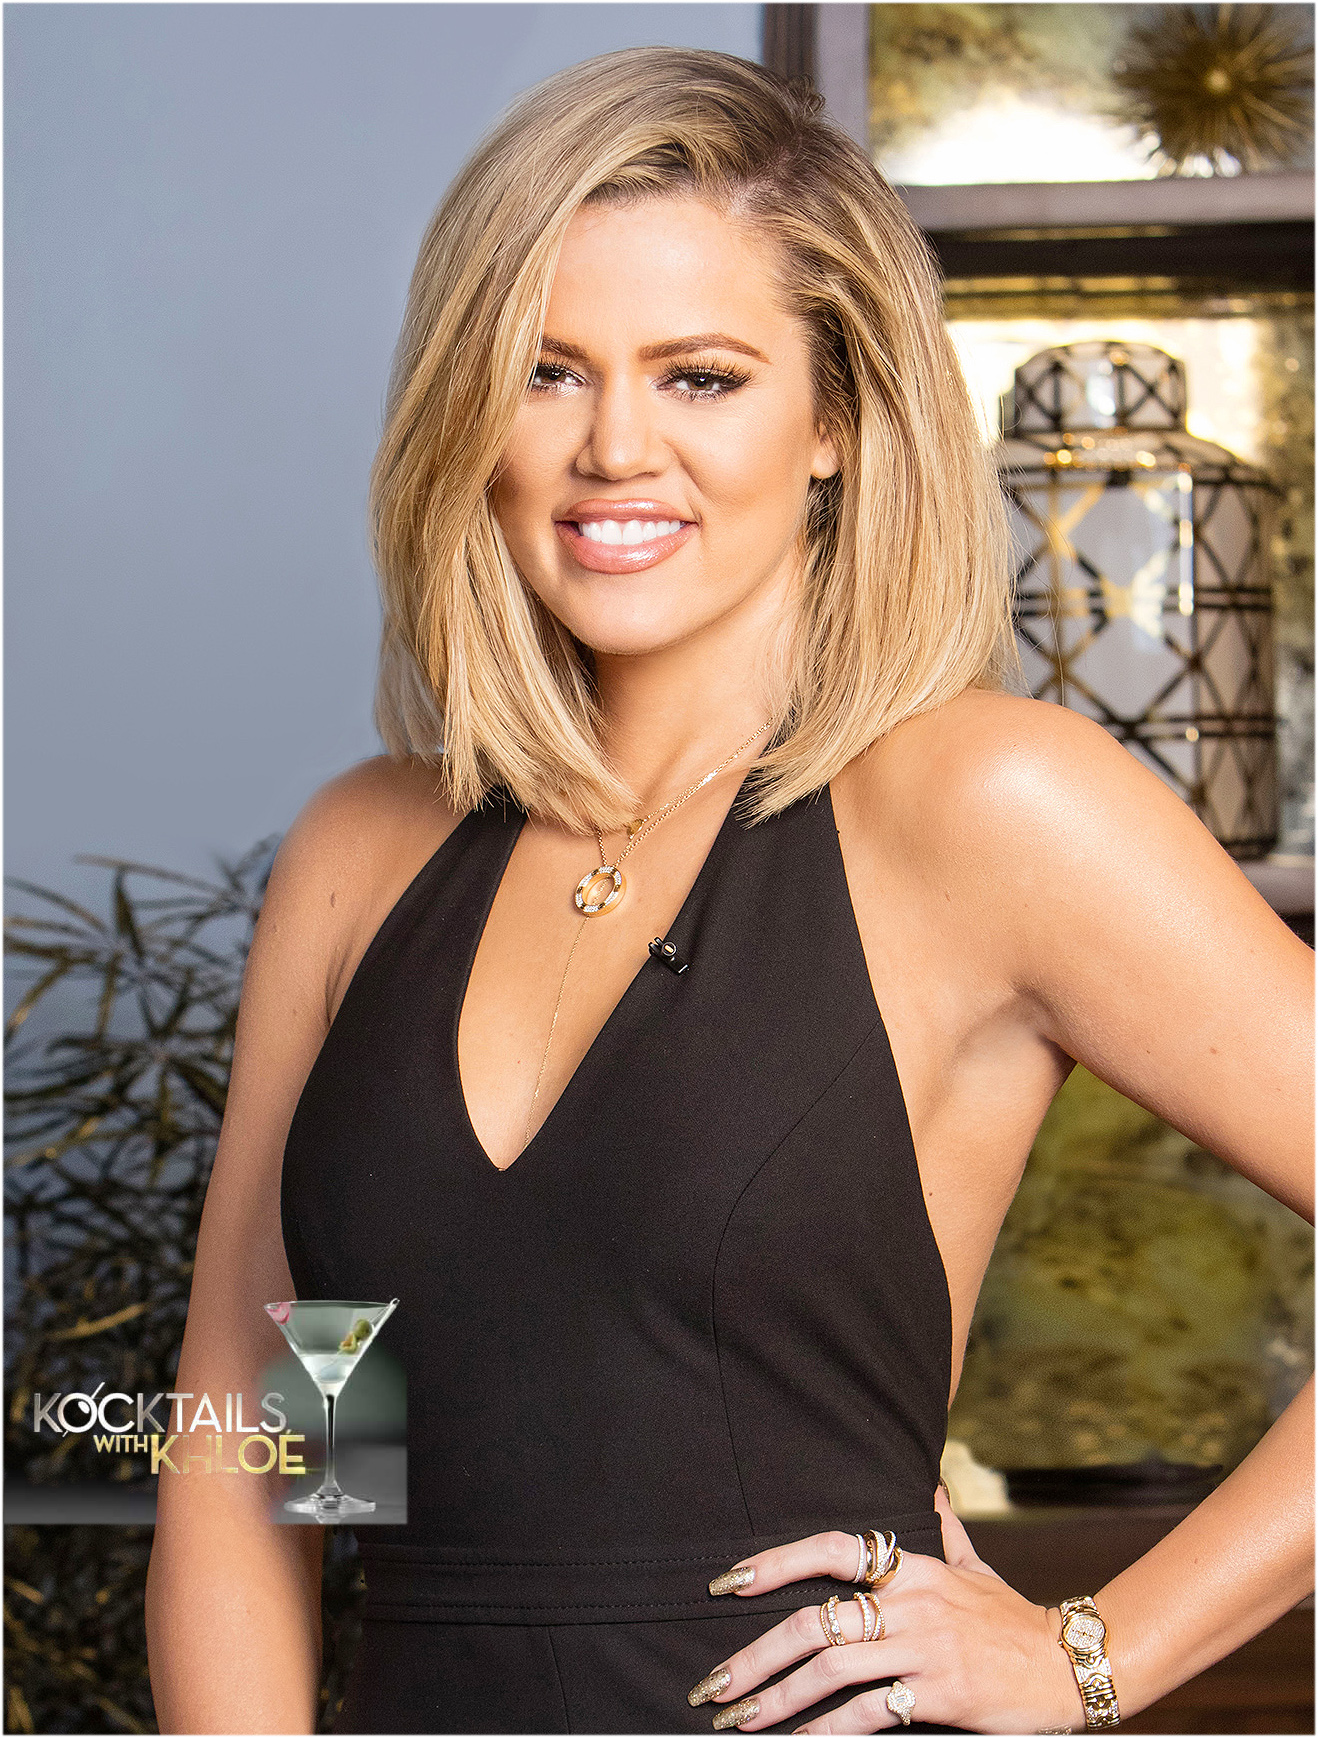 Kocktails with Khloé: Episode 01 – The Happiest Hour